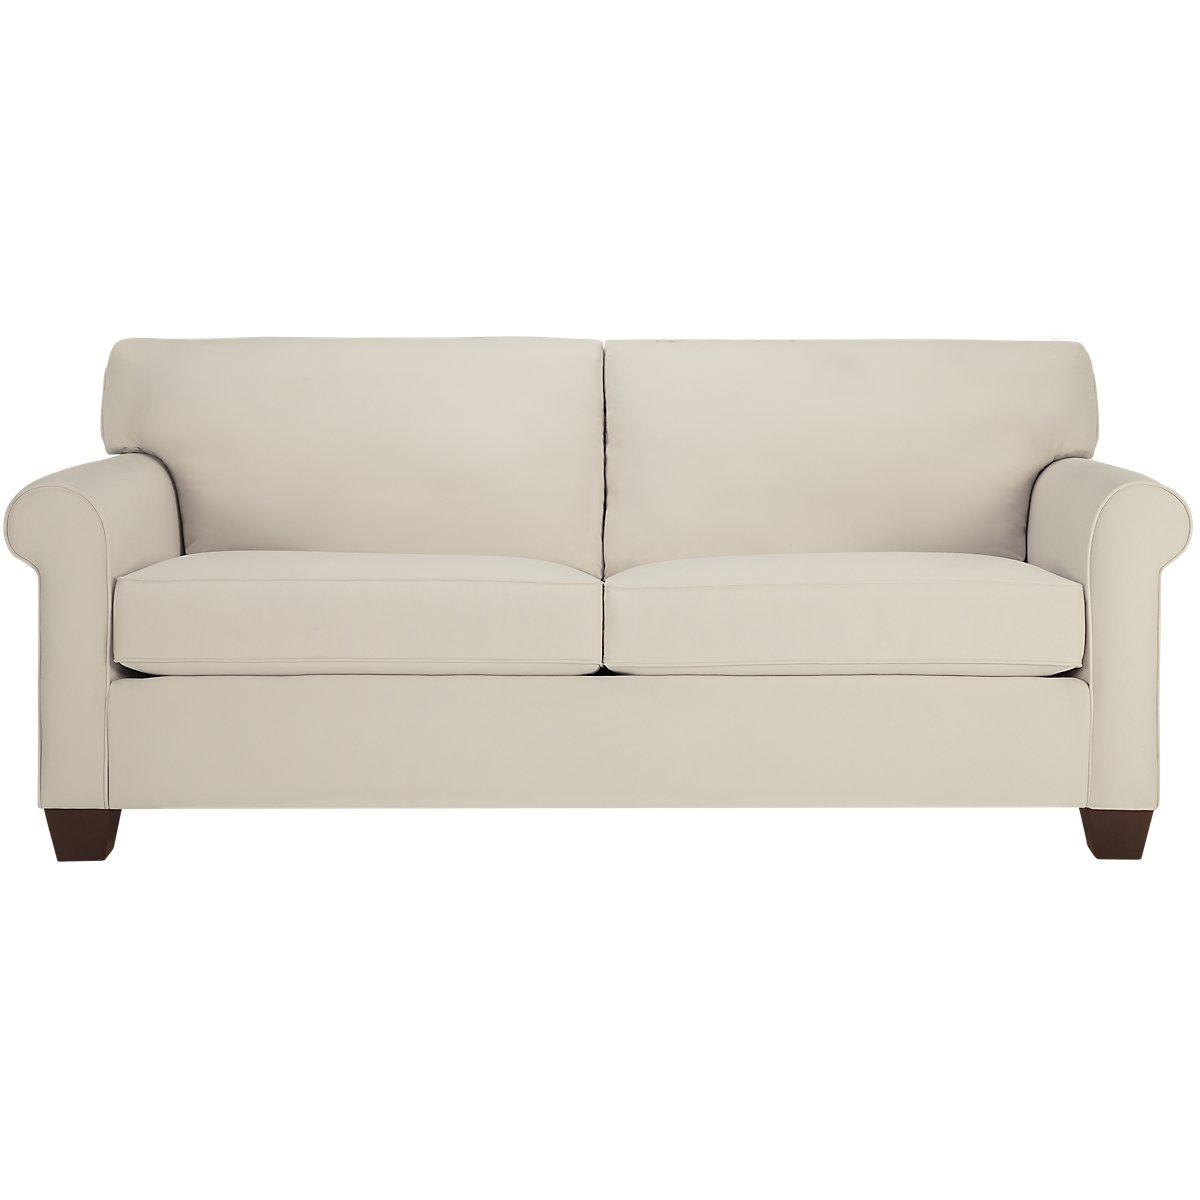 Corlis Light Beige Fabric Sofa